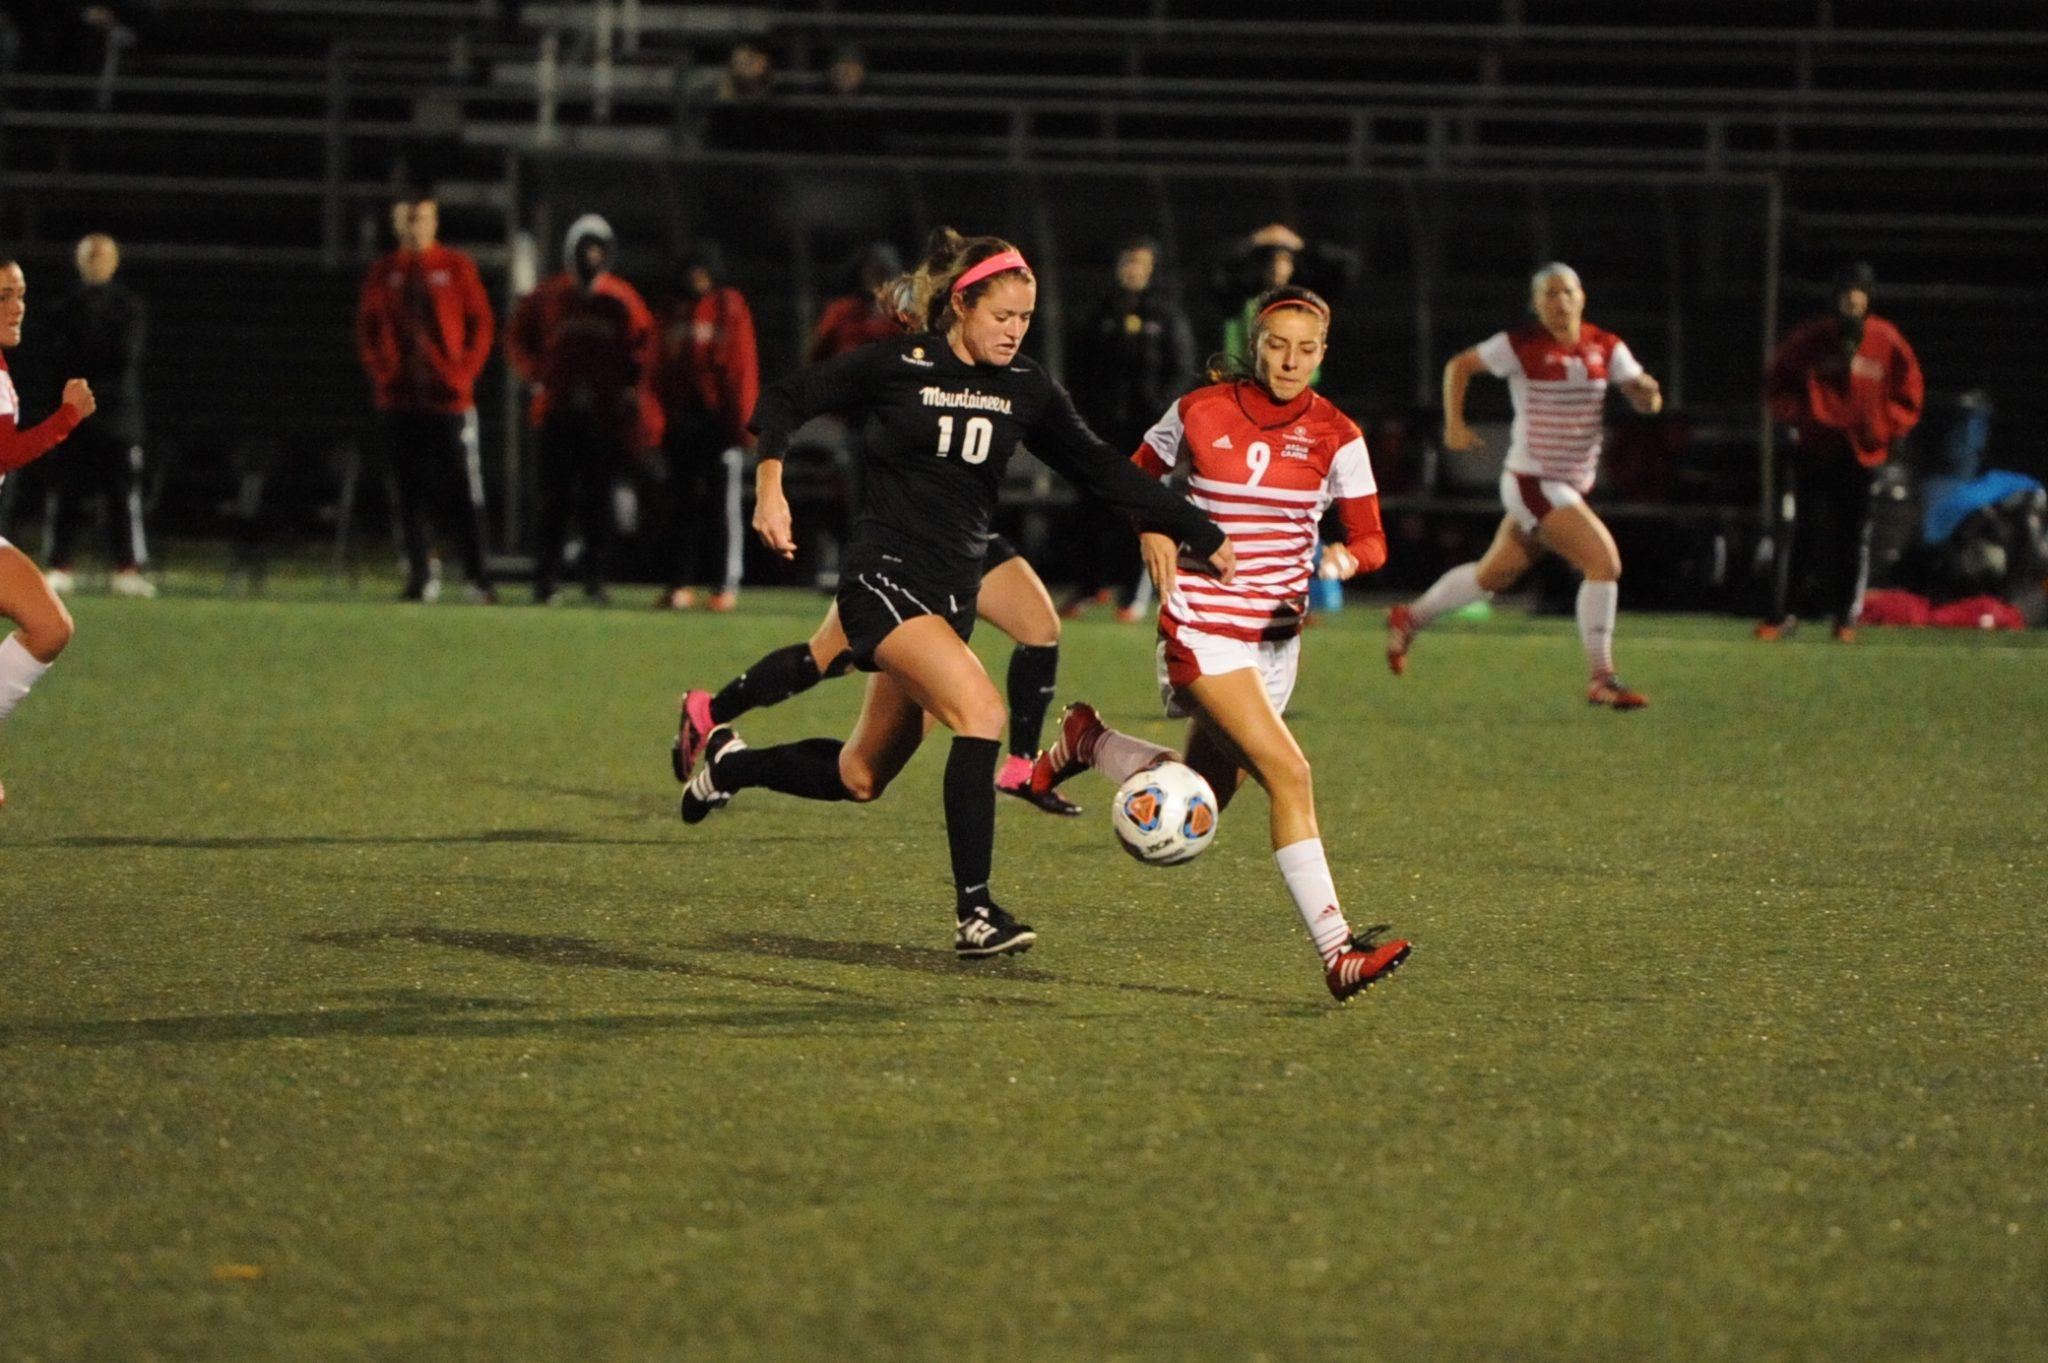 Senior Jane Cline drives the ball past a ULL defender during Friday night's win. Photo Courtesy: App State Athletics/Dave Mayo